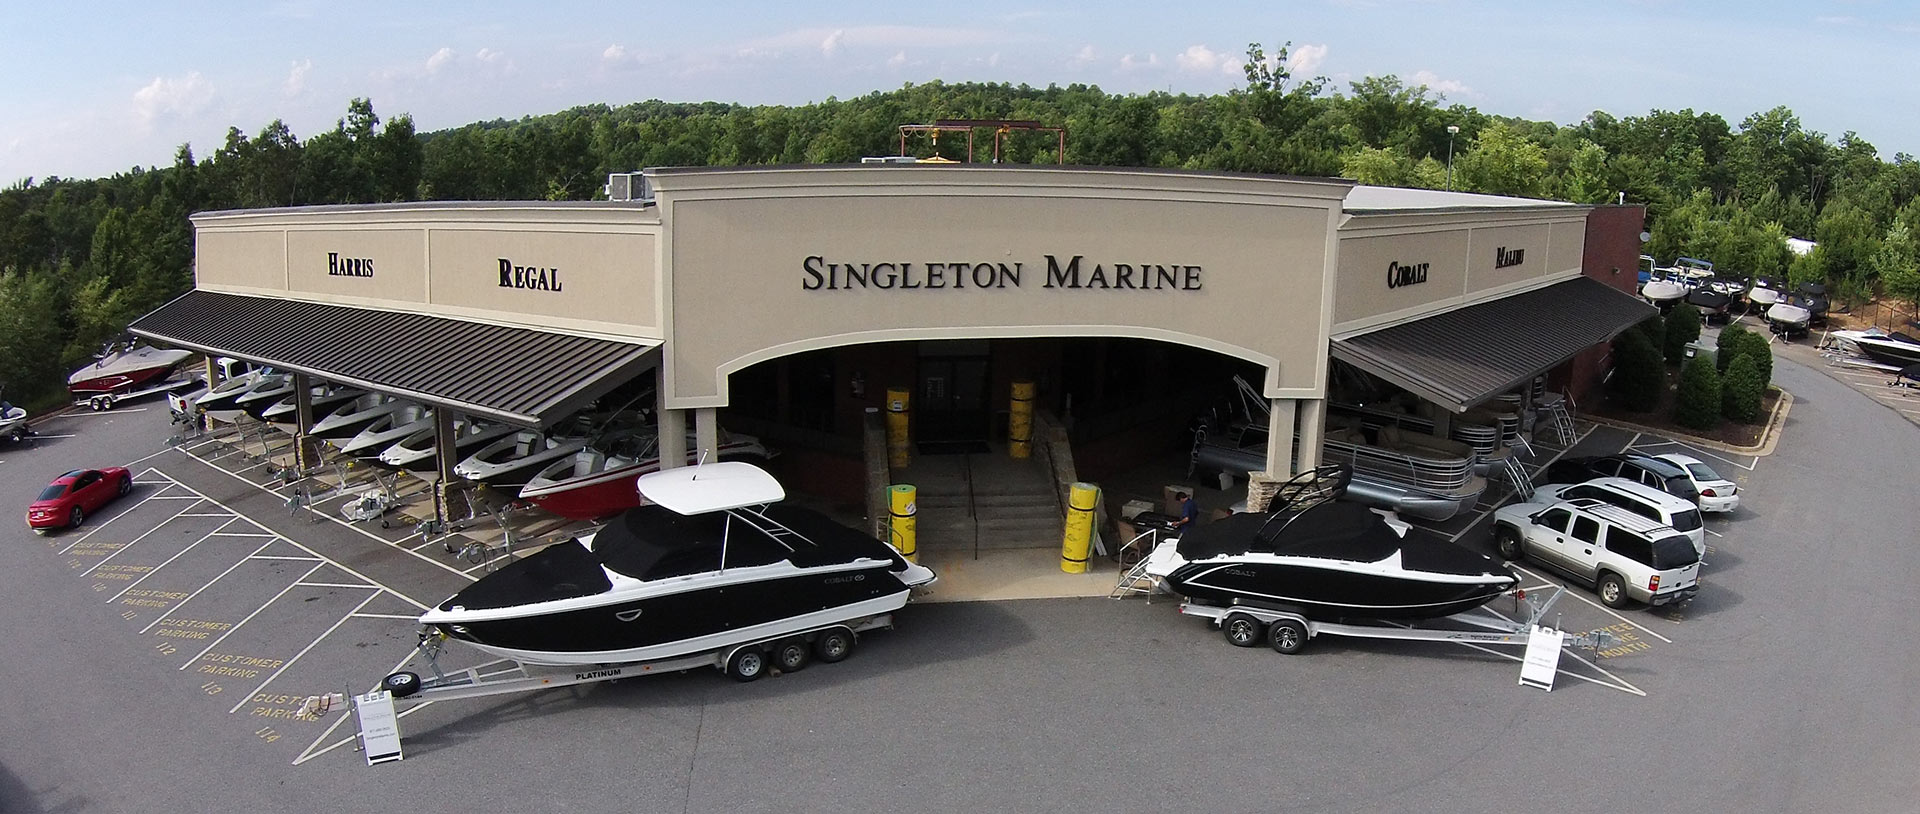 Singleton Marine Group - Lake Lanier